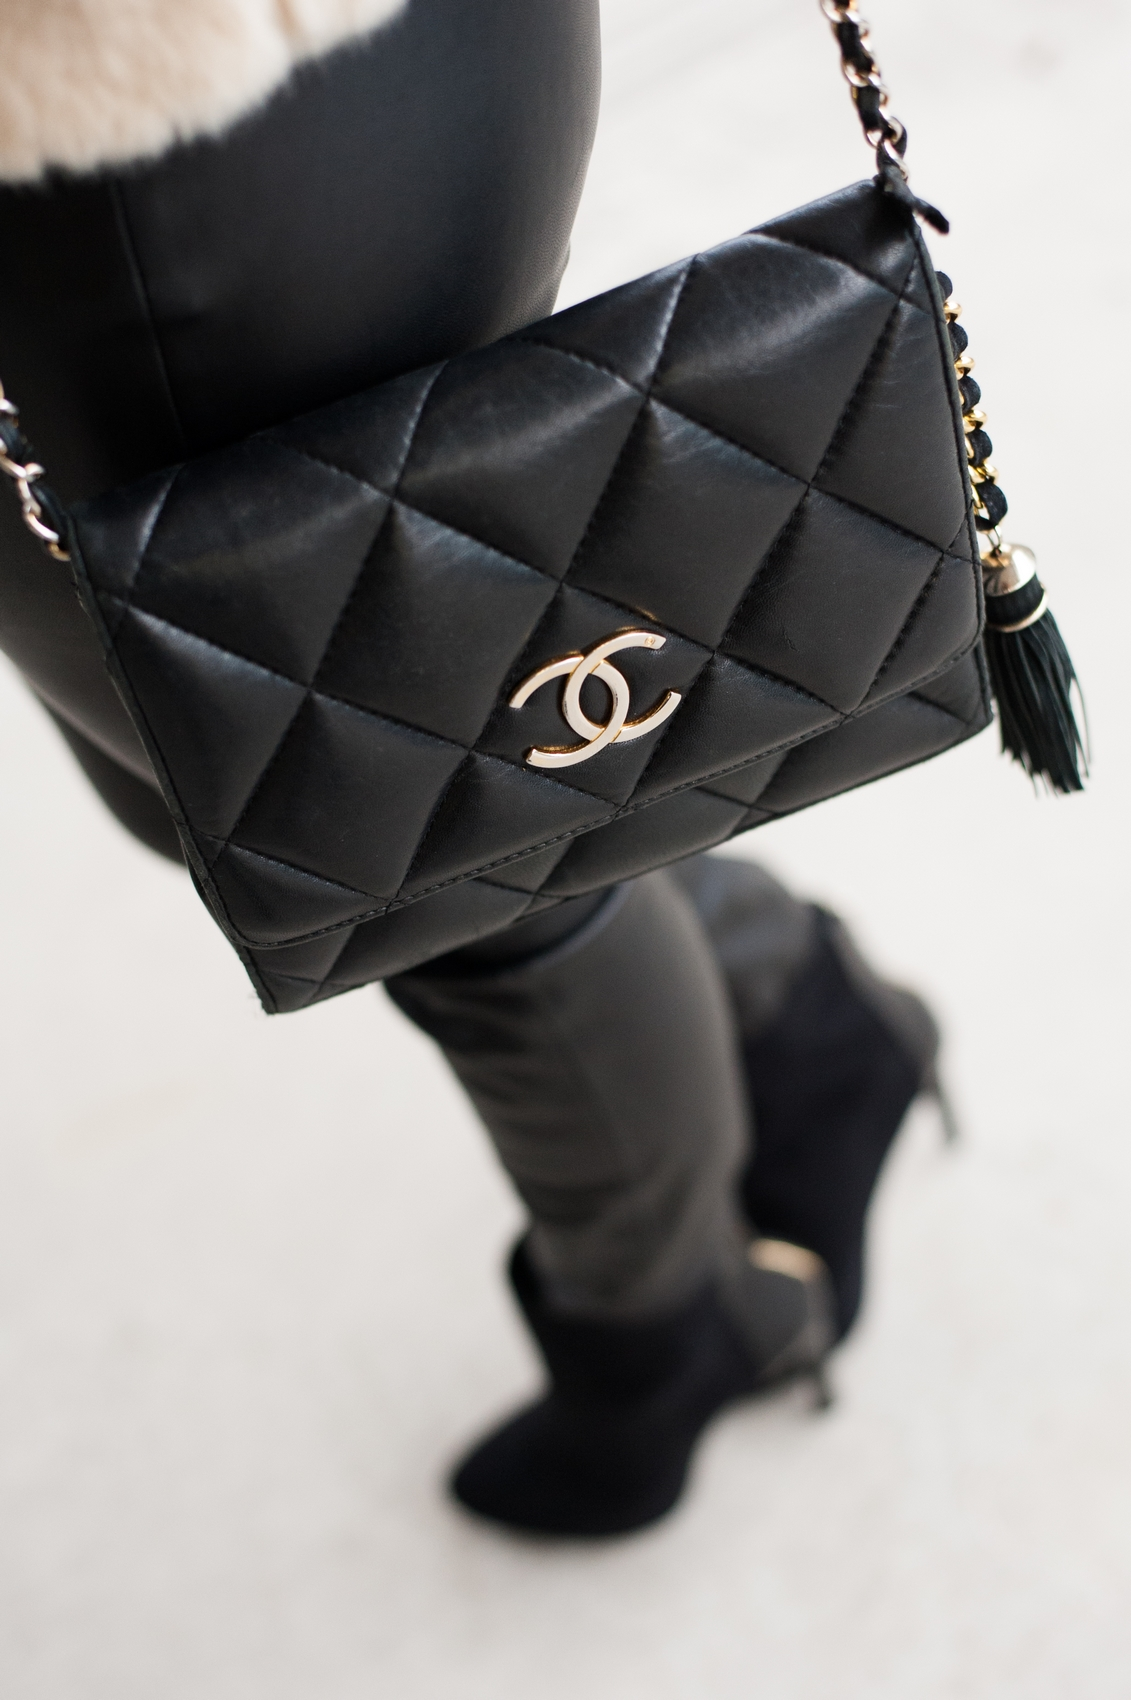 chanel leather bag low boots high heel stradivarius